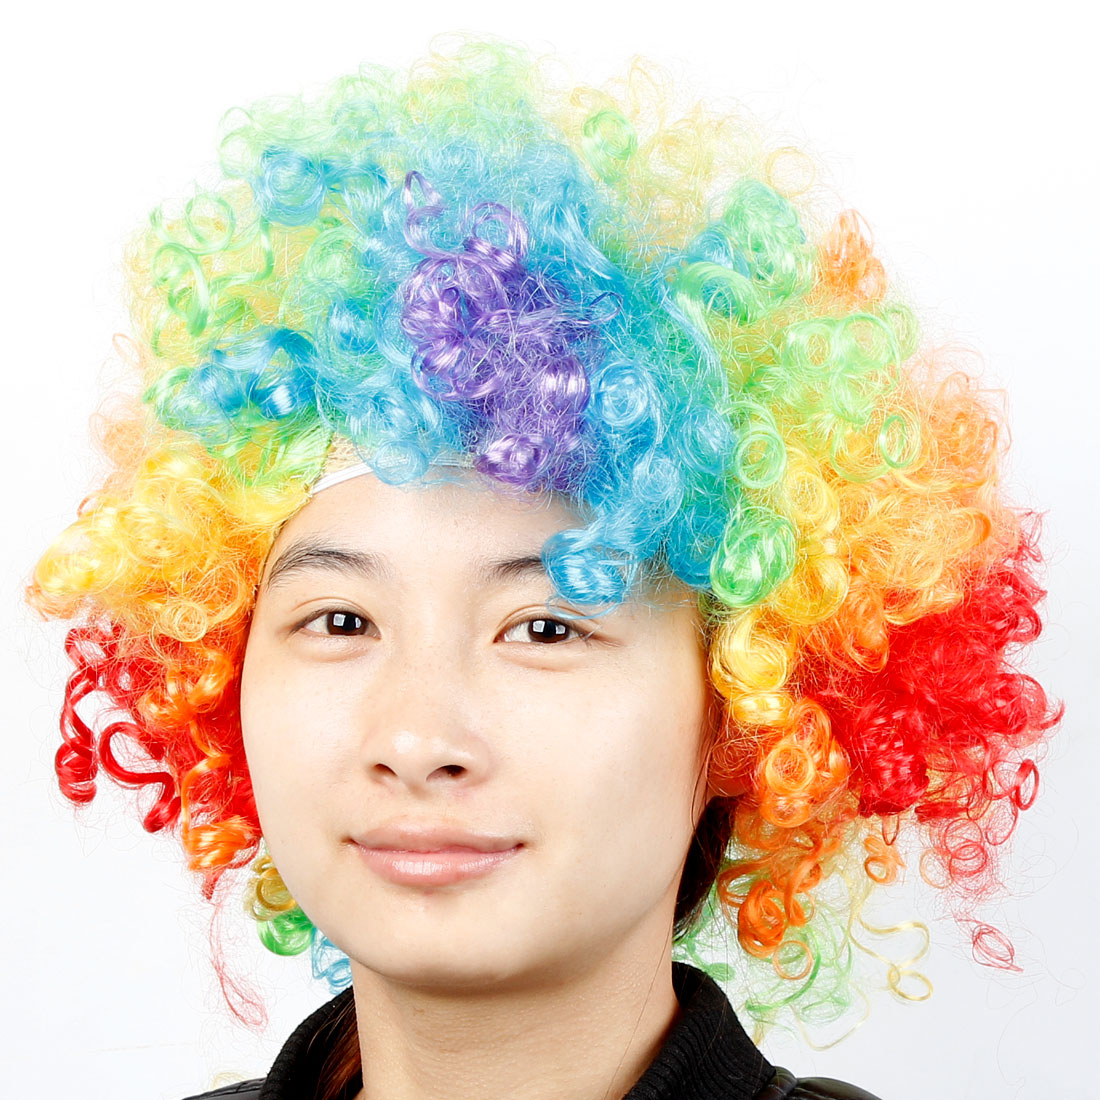 Costume Cosplay Party Colorful Clown Wig Wild Curl up Hairpiece